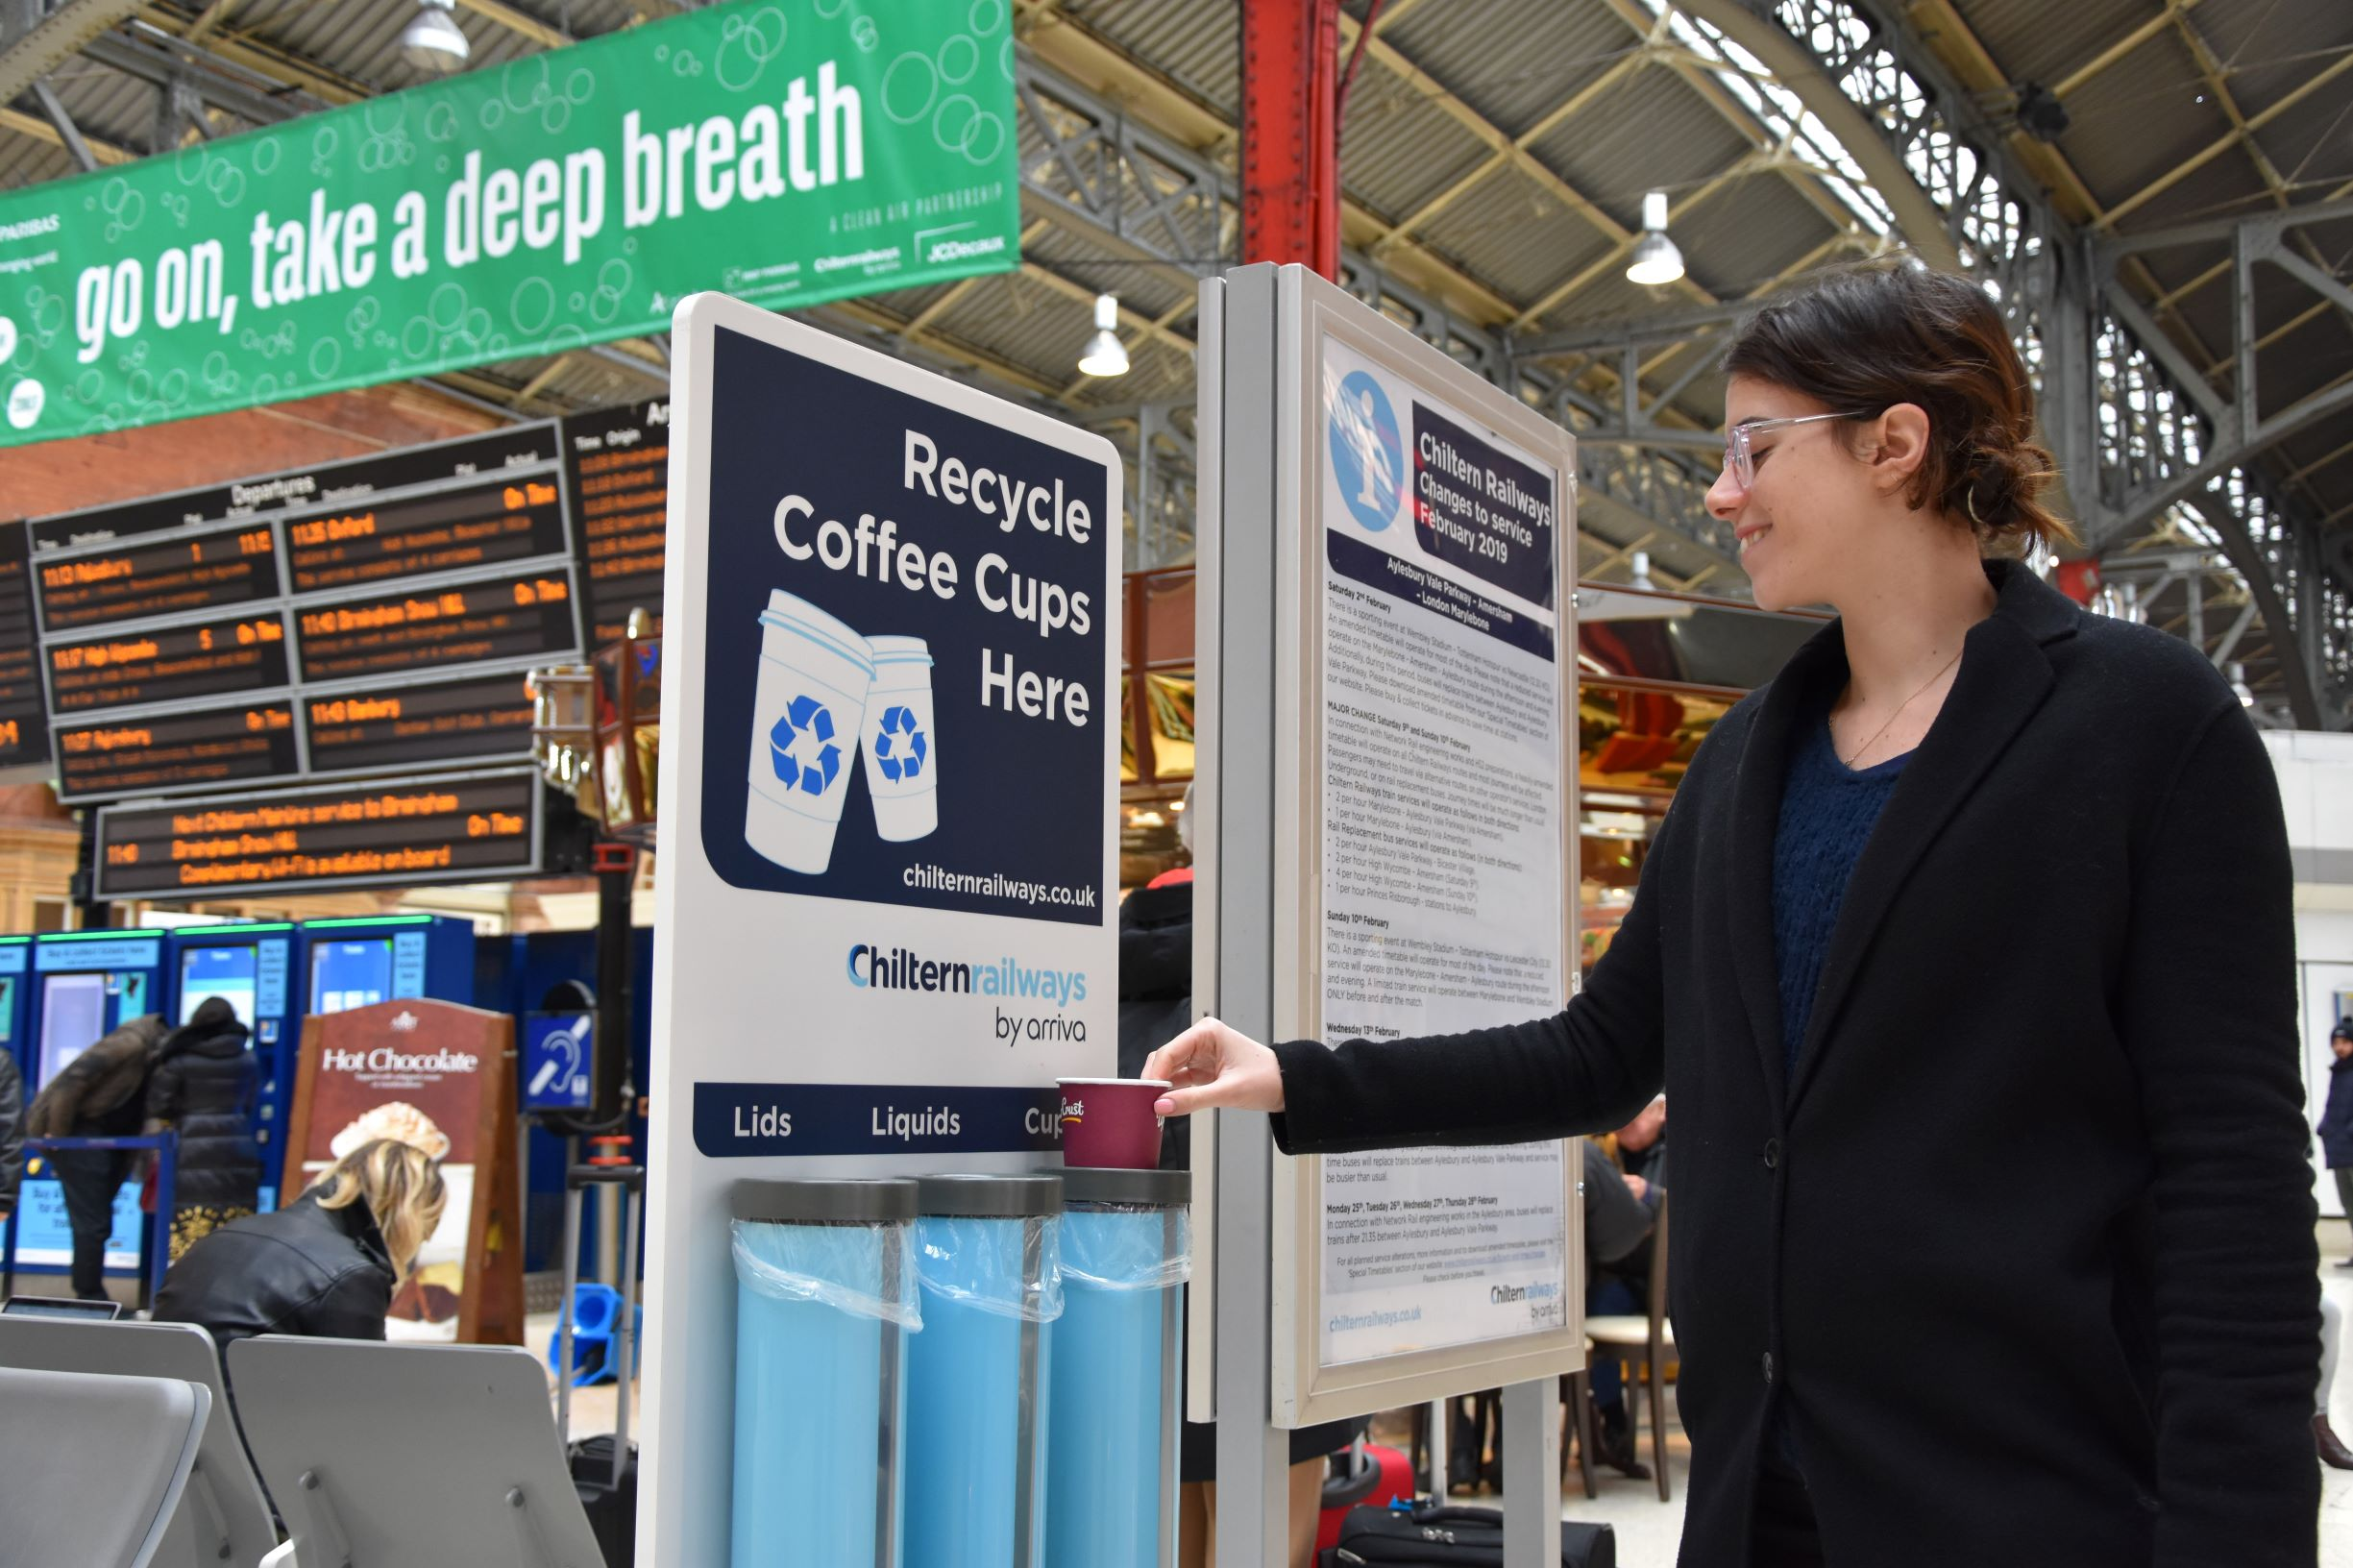 Chiltern Railways fast-track coffee cup recycling at stations